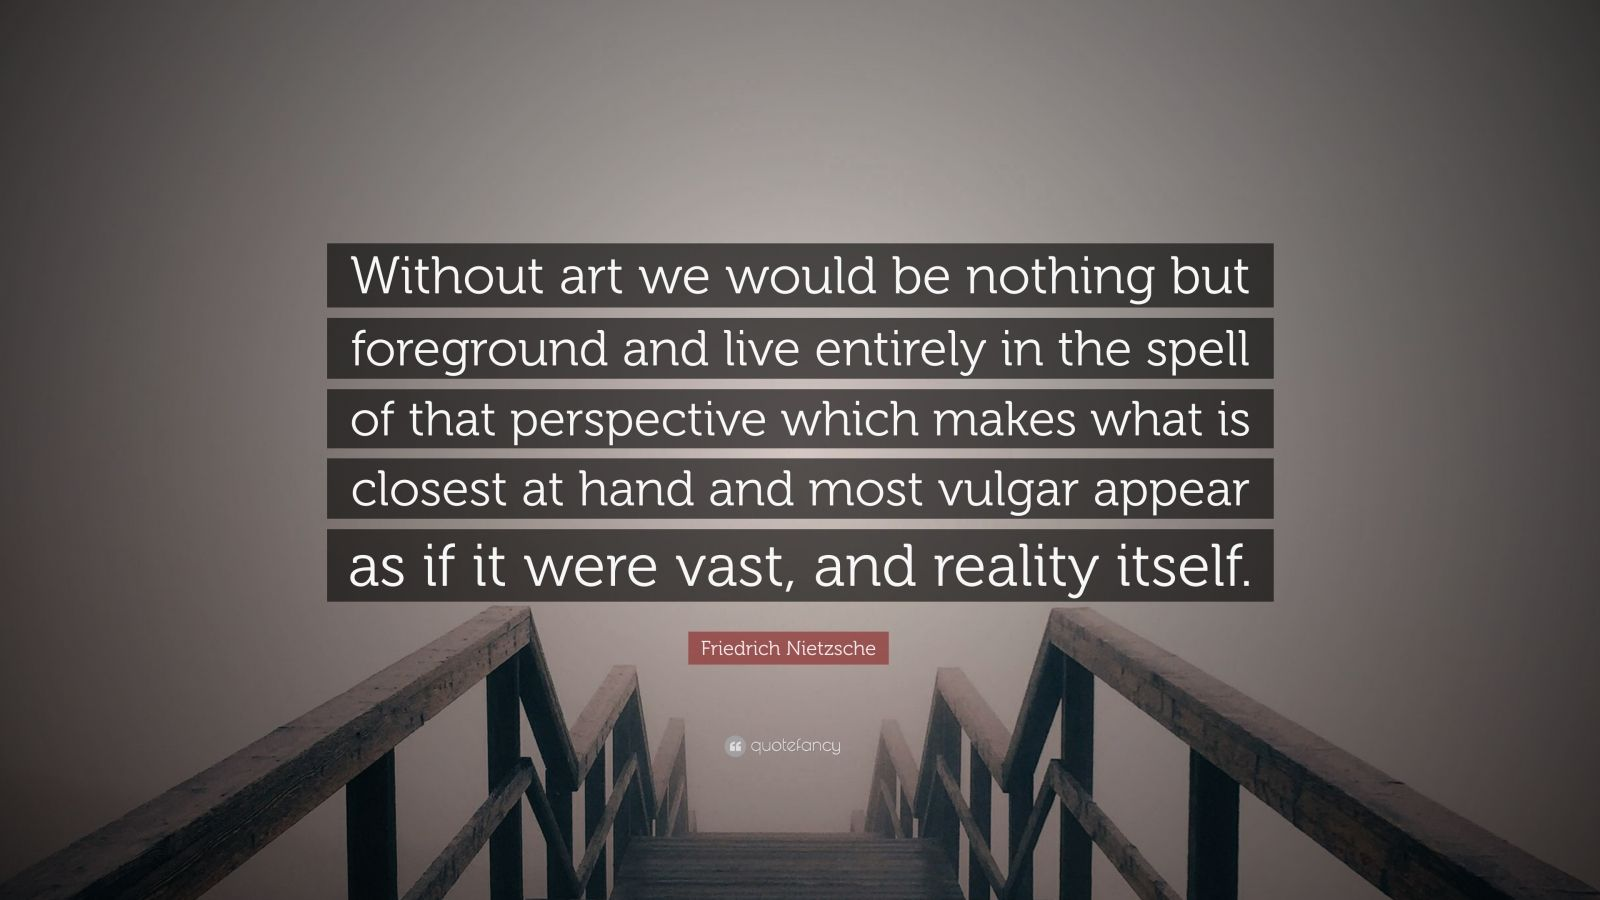 friedrich nietzsche another perspective on reality